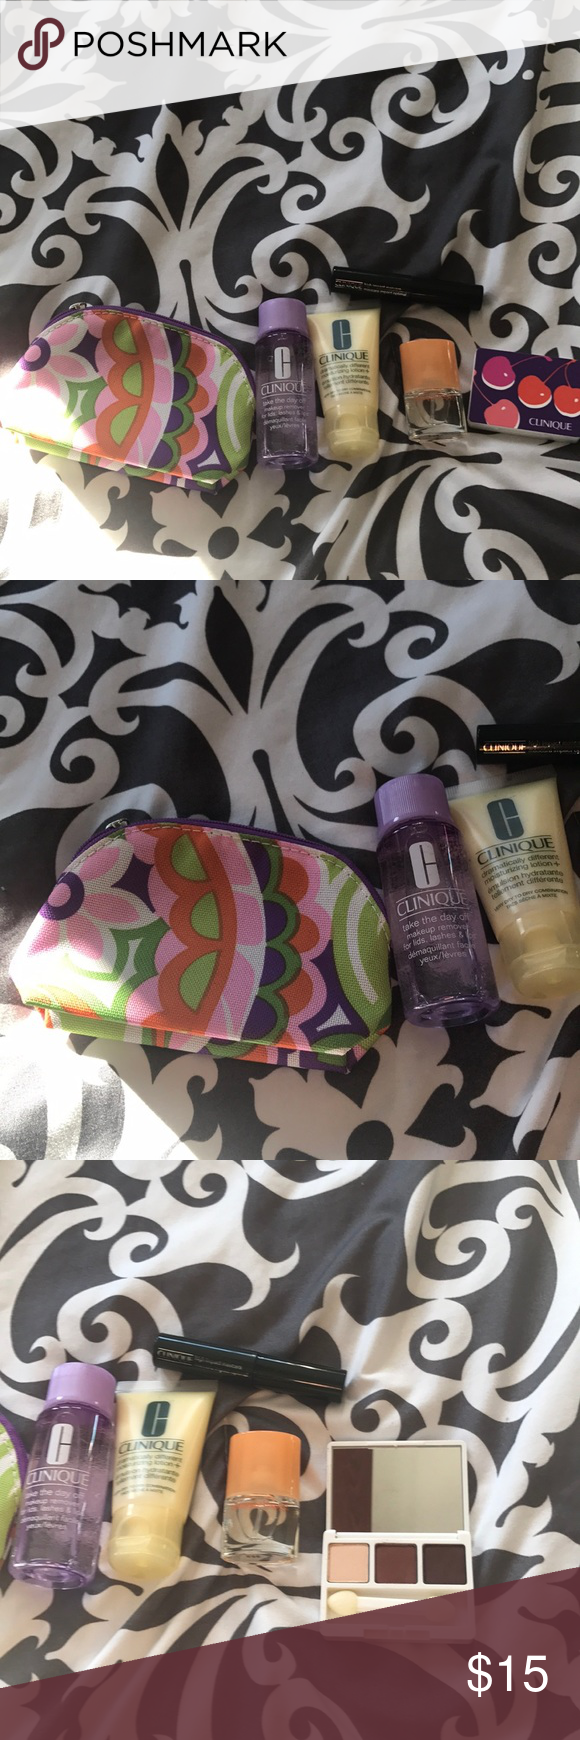 NWOT Clinique Happy perfume, Mini makeup bag, Clinique